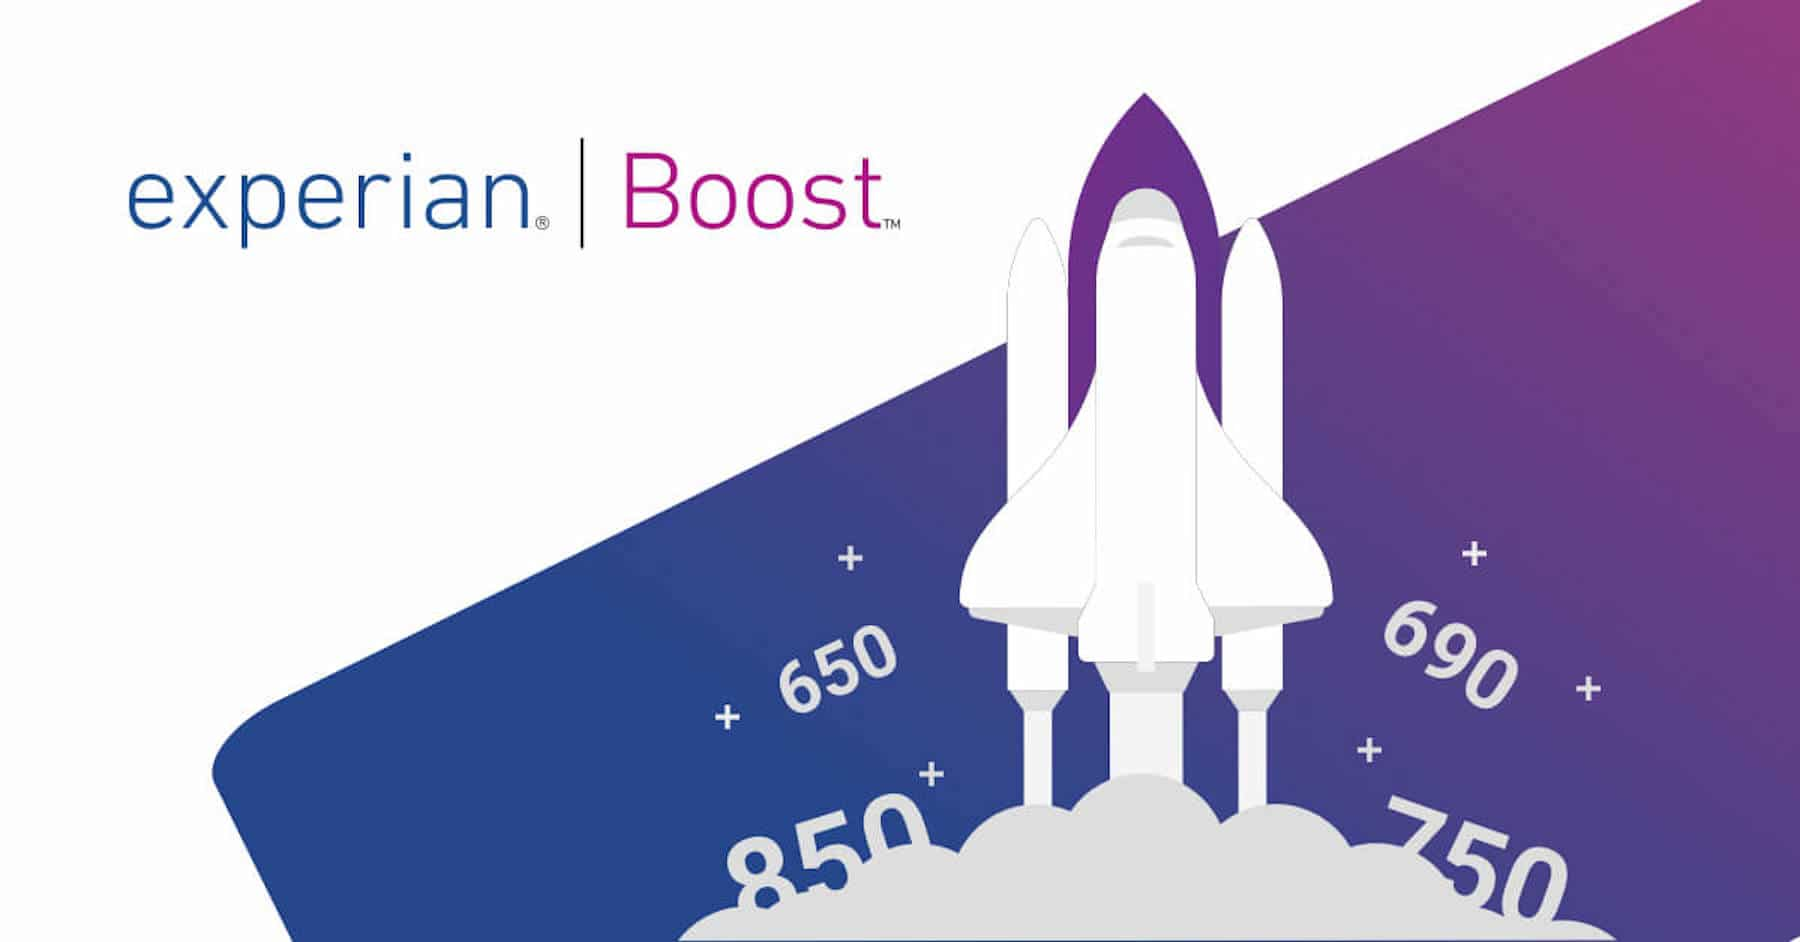 Experian Boost Bestowed with Consumer Lending Innovation Award from FinTech Breakthrough